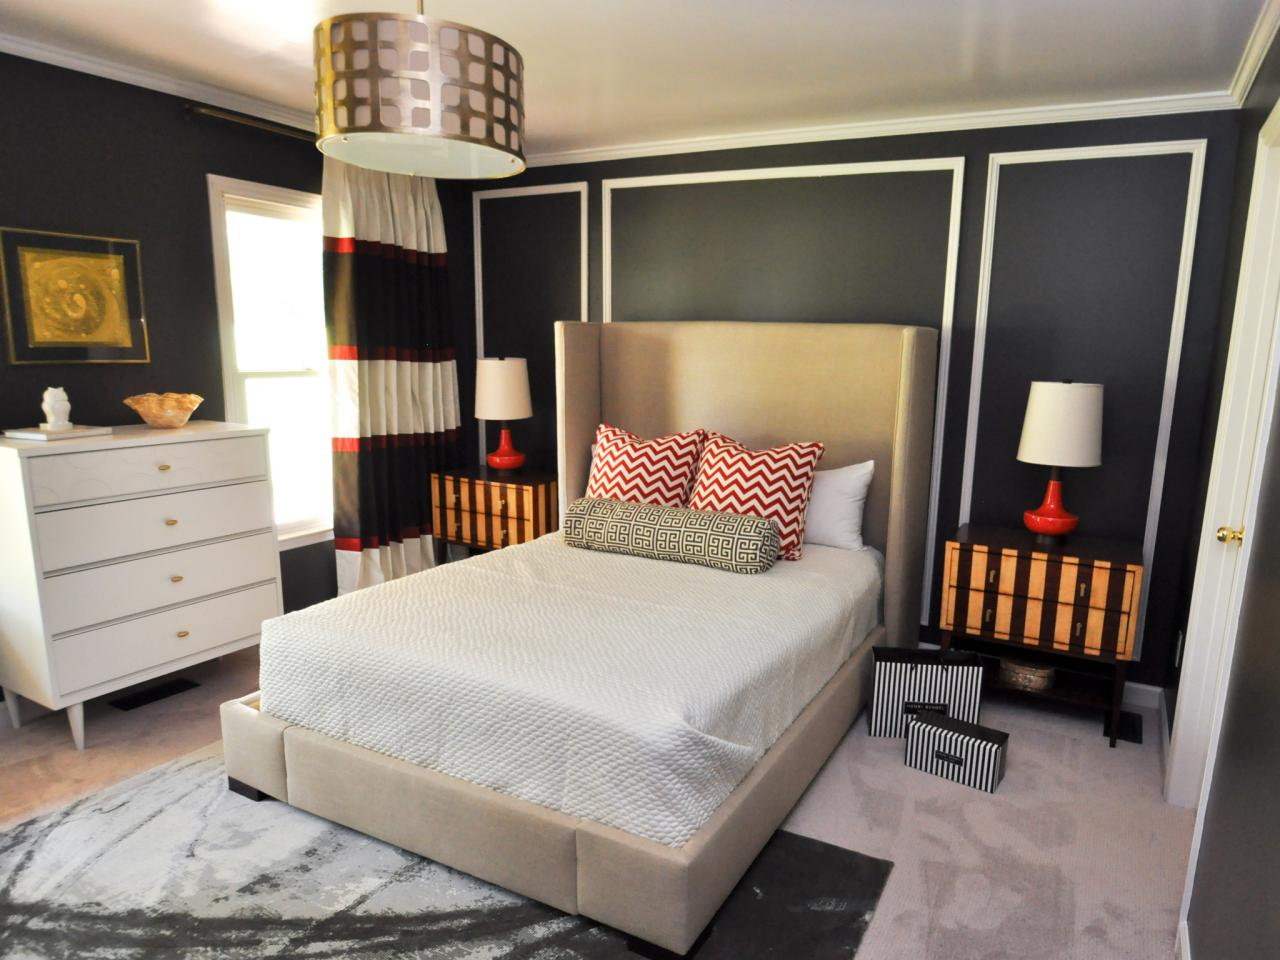 designer inspired master bedroom evaru design hgtv. Black Bedroom Furniture Sets. Home Design Ideas